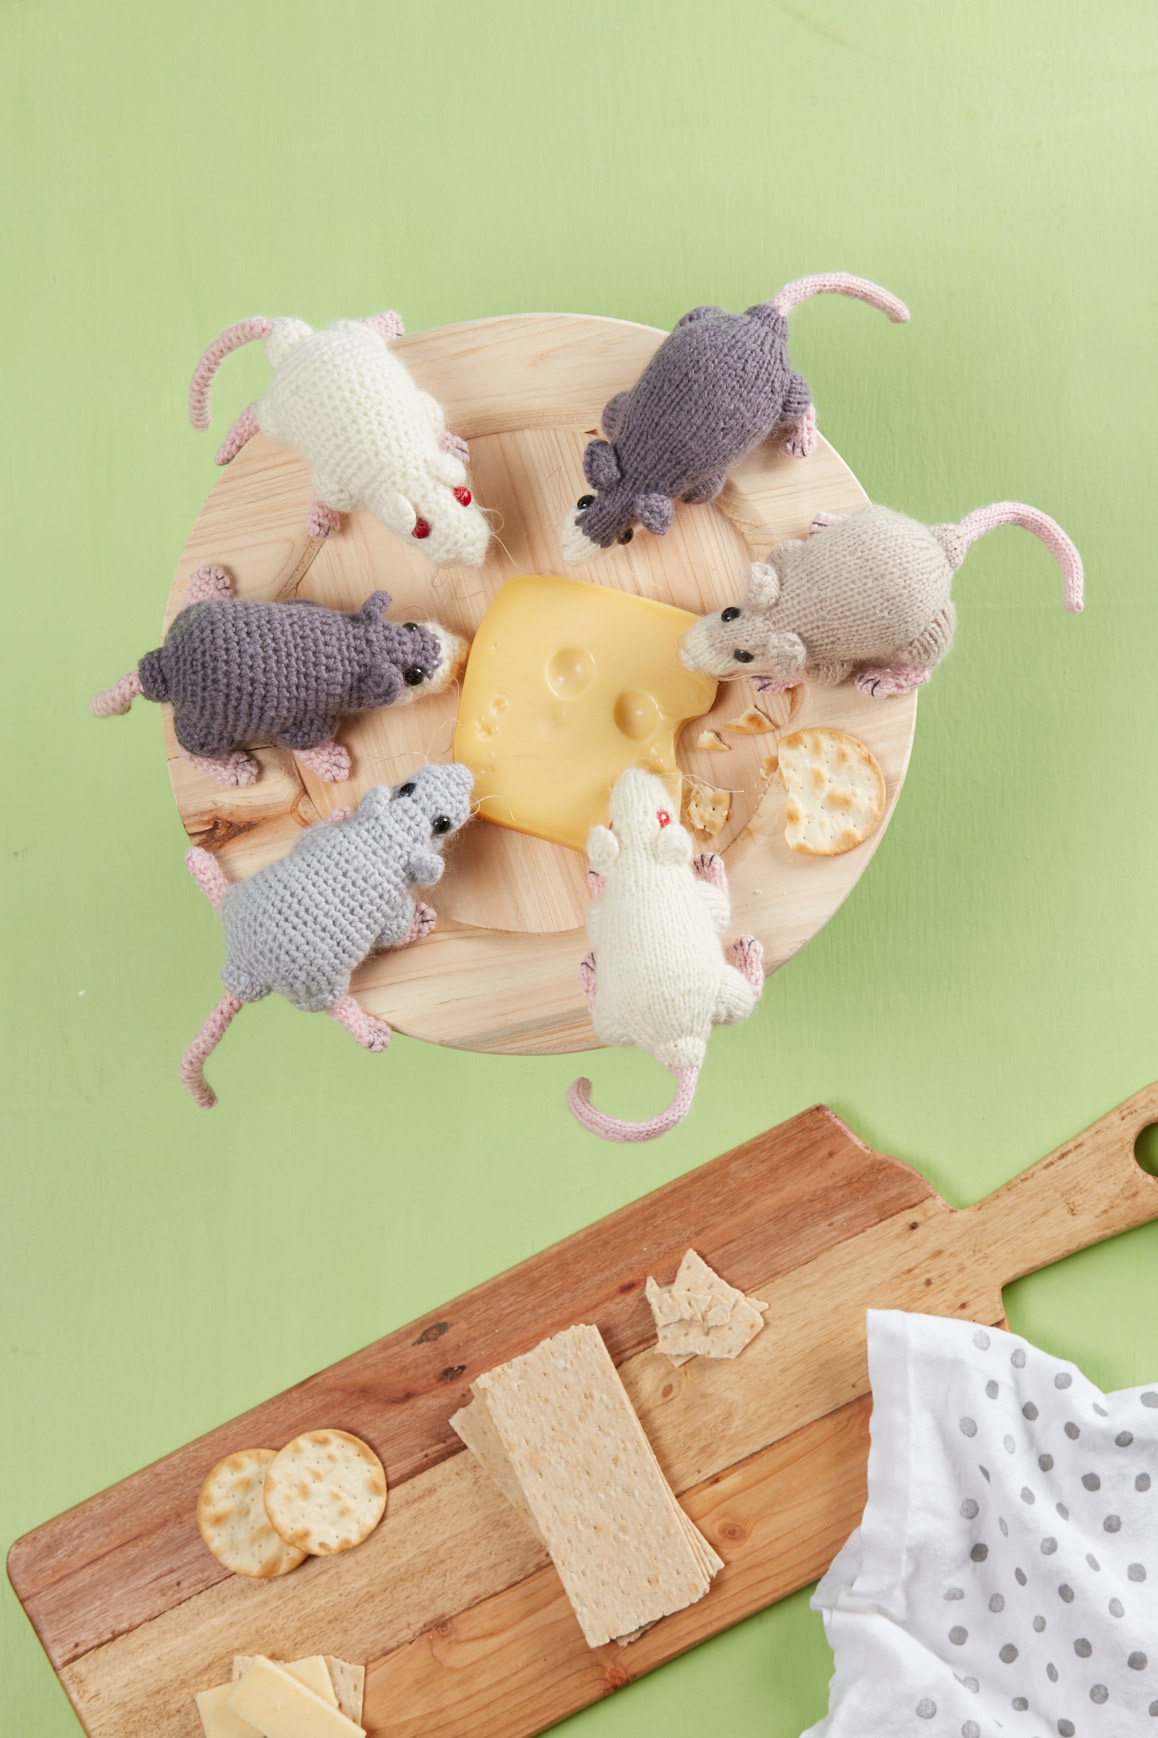 Rat–a–Cuties knitting pattern and crochet pattern from Love of Knitting Toys by Megan Kreiner